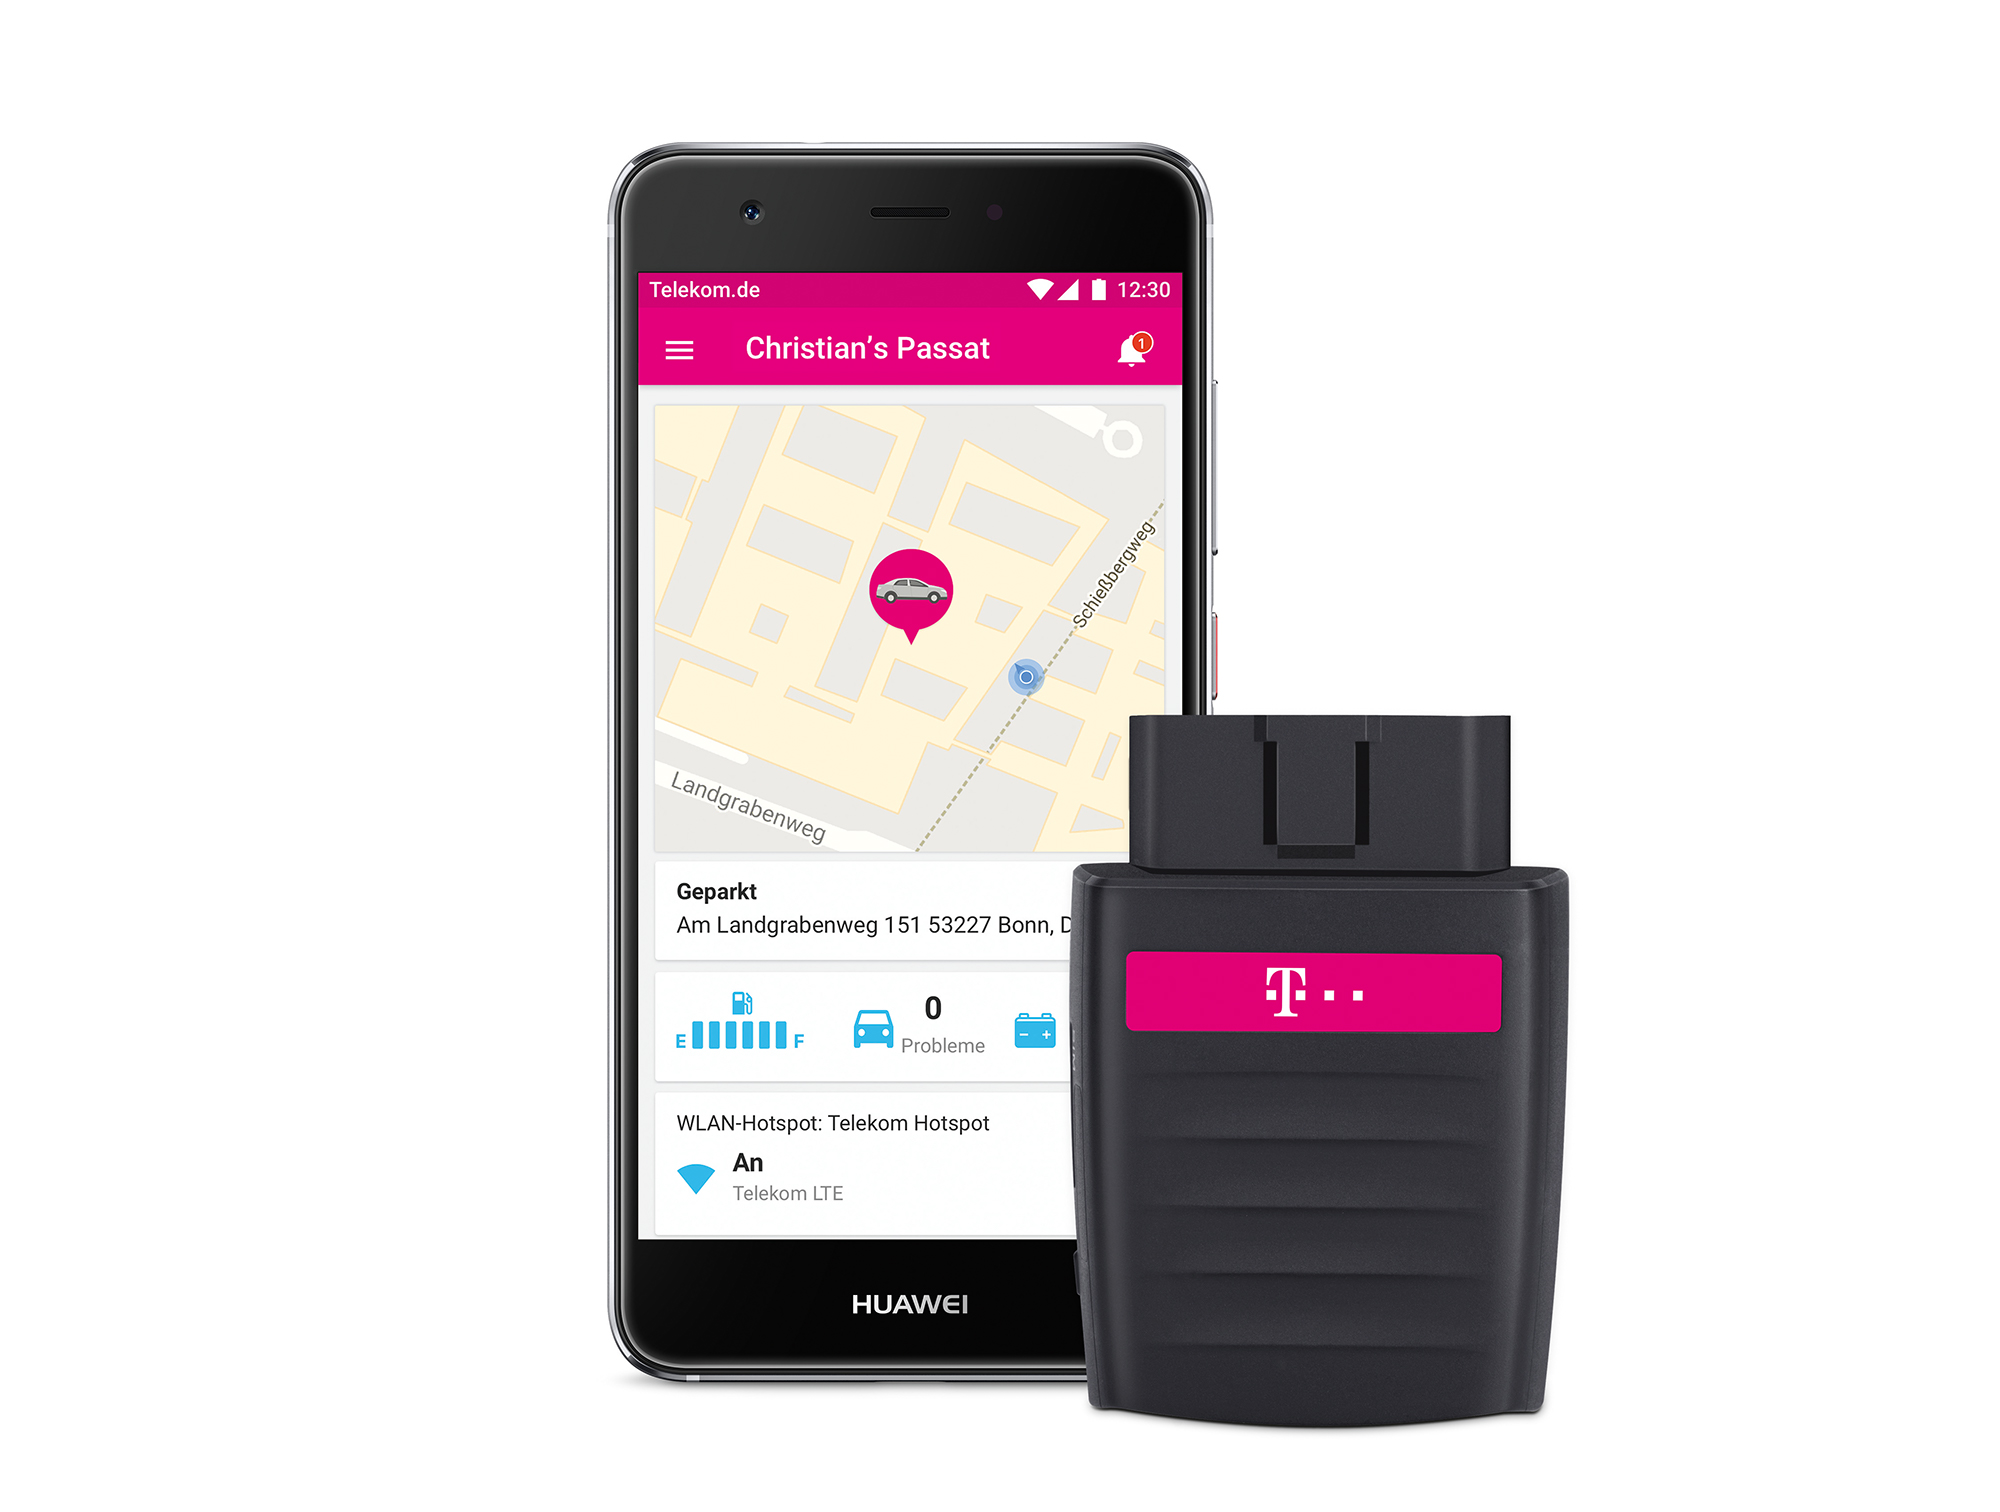 mojio-telekom-carconnect-germany